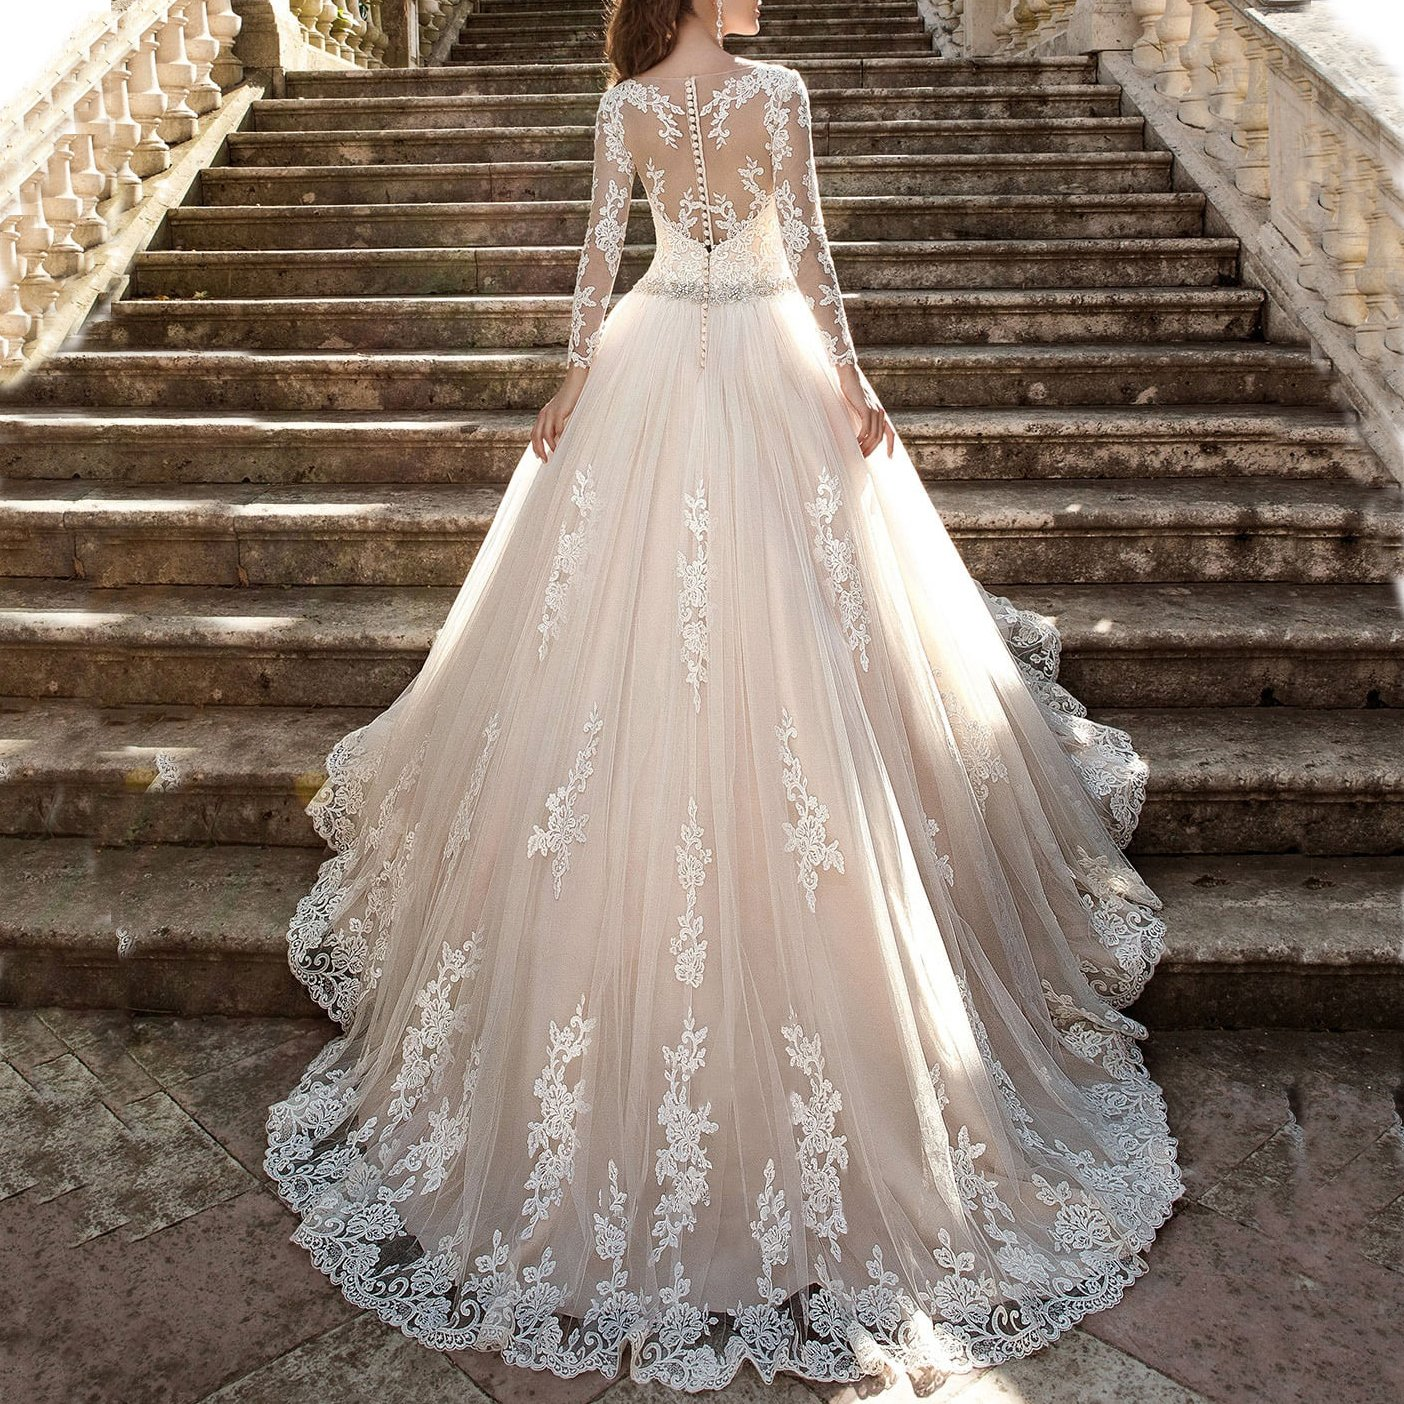 westcorler Luxury Wedding Dress Long Sleeves Ball Gown Lace Wedding Dresses (us14, Ivory) by westcorler (Image #3)